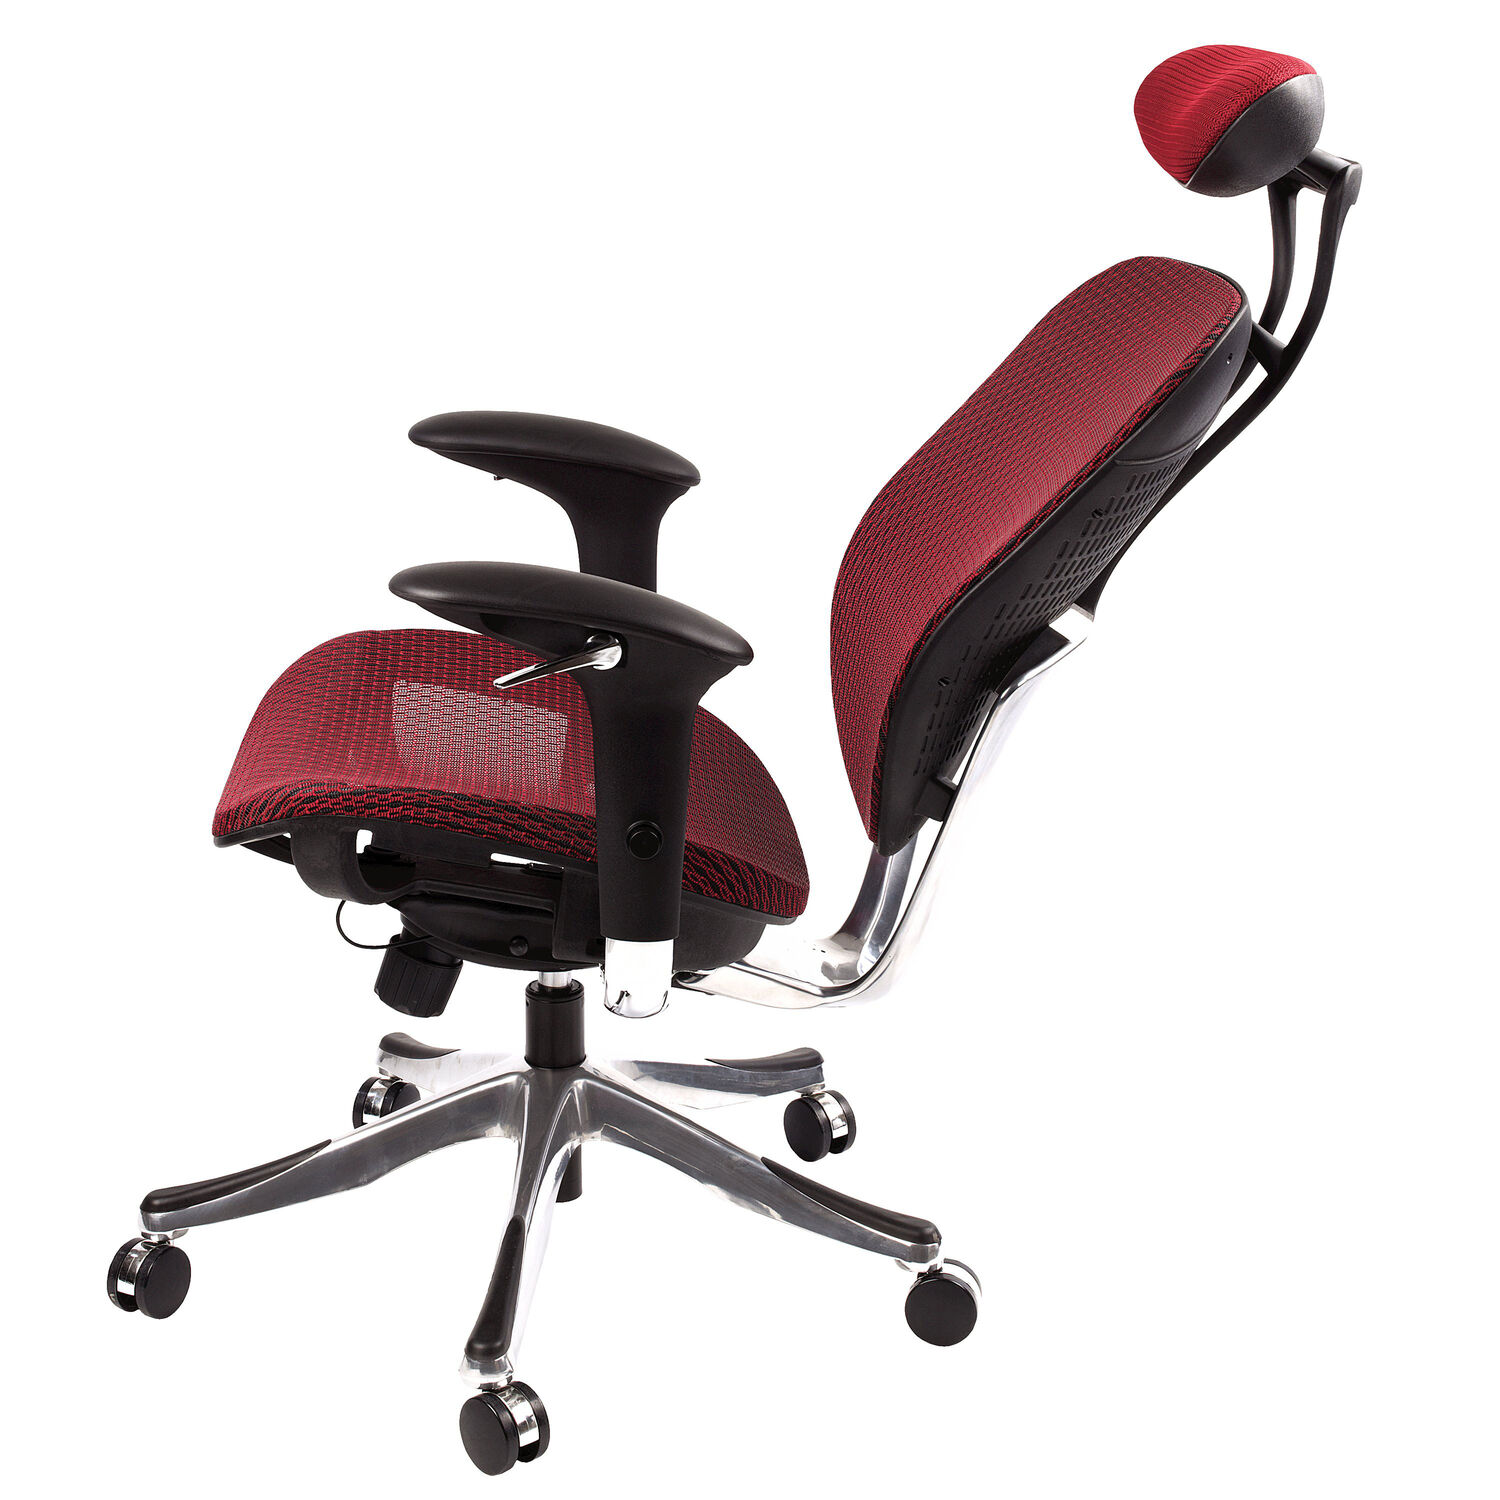 Samsonite Zurich Mesh Office Chair In The Color Burgundy